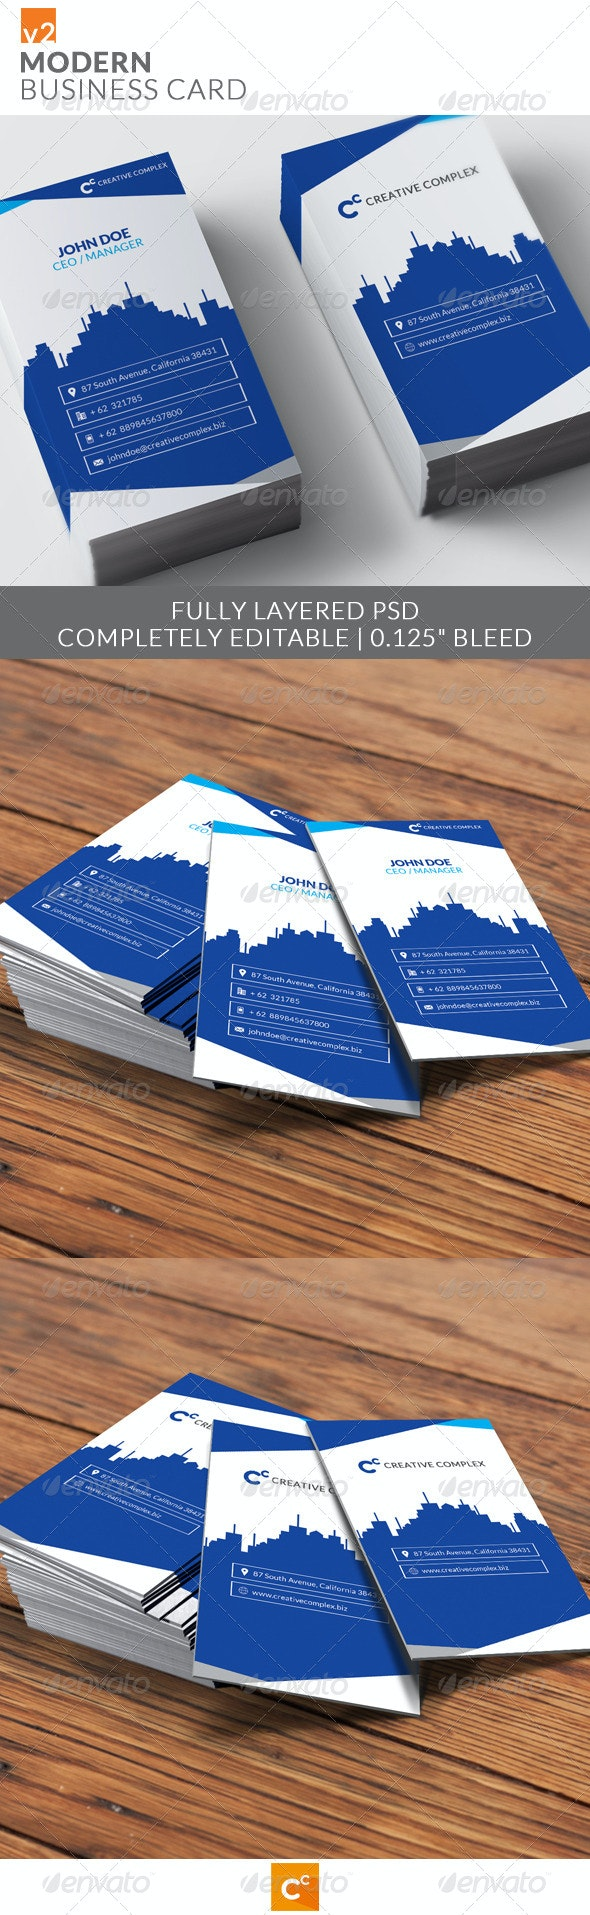 Modern Business Card v2 - Corporate Business Cards